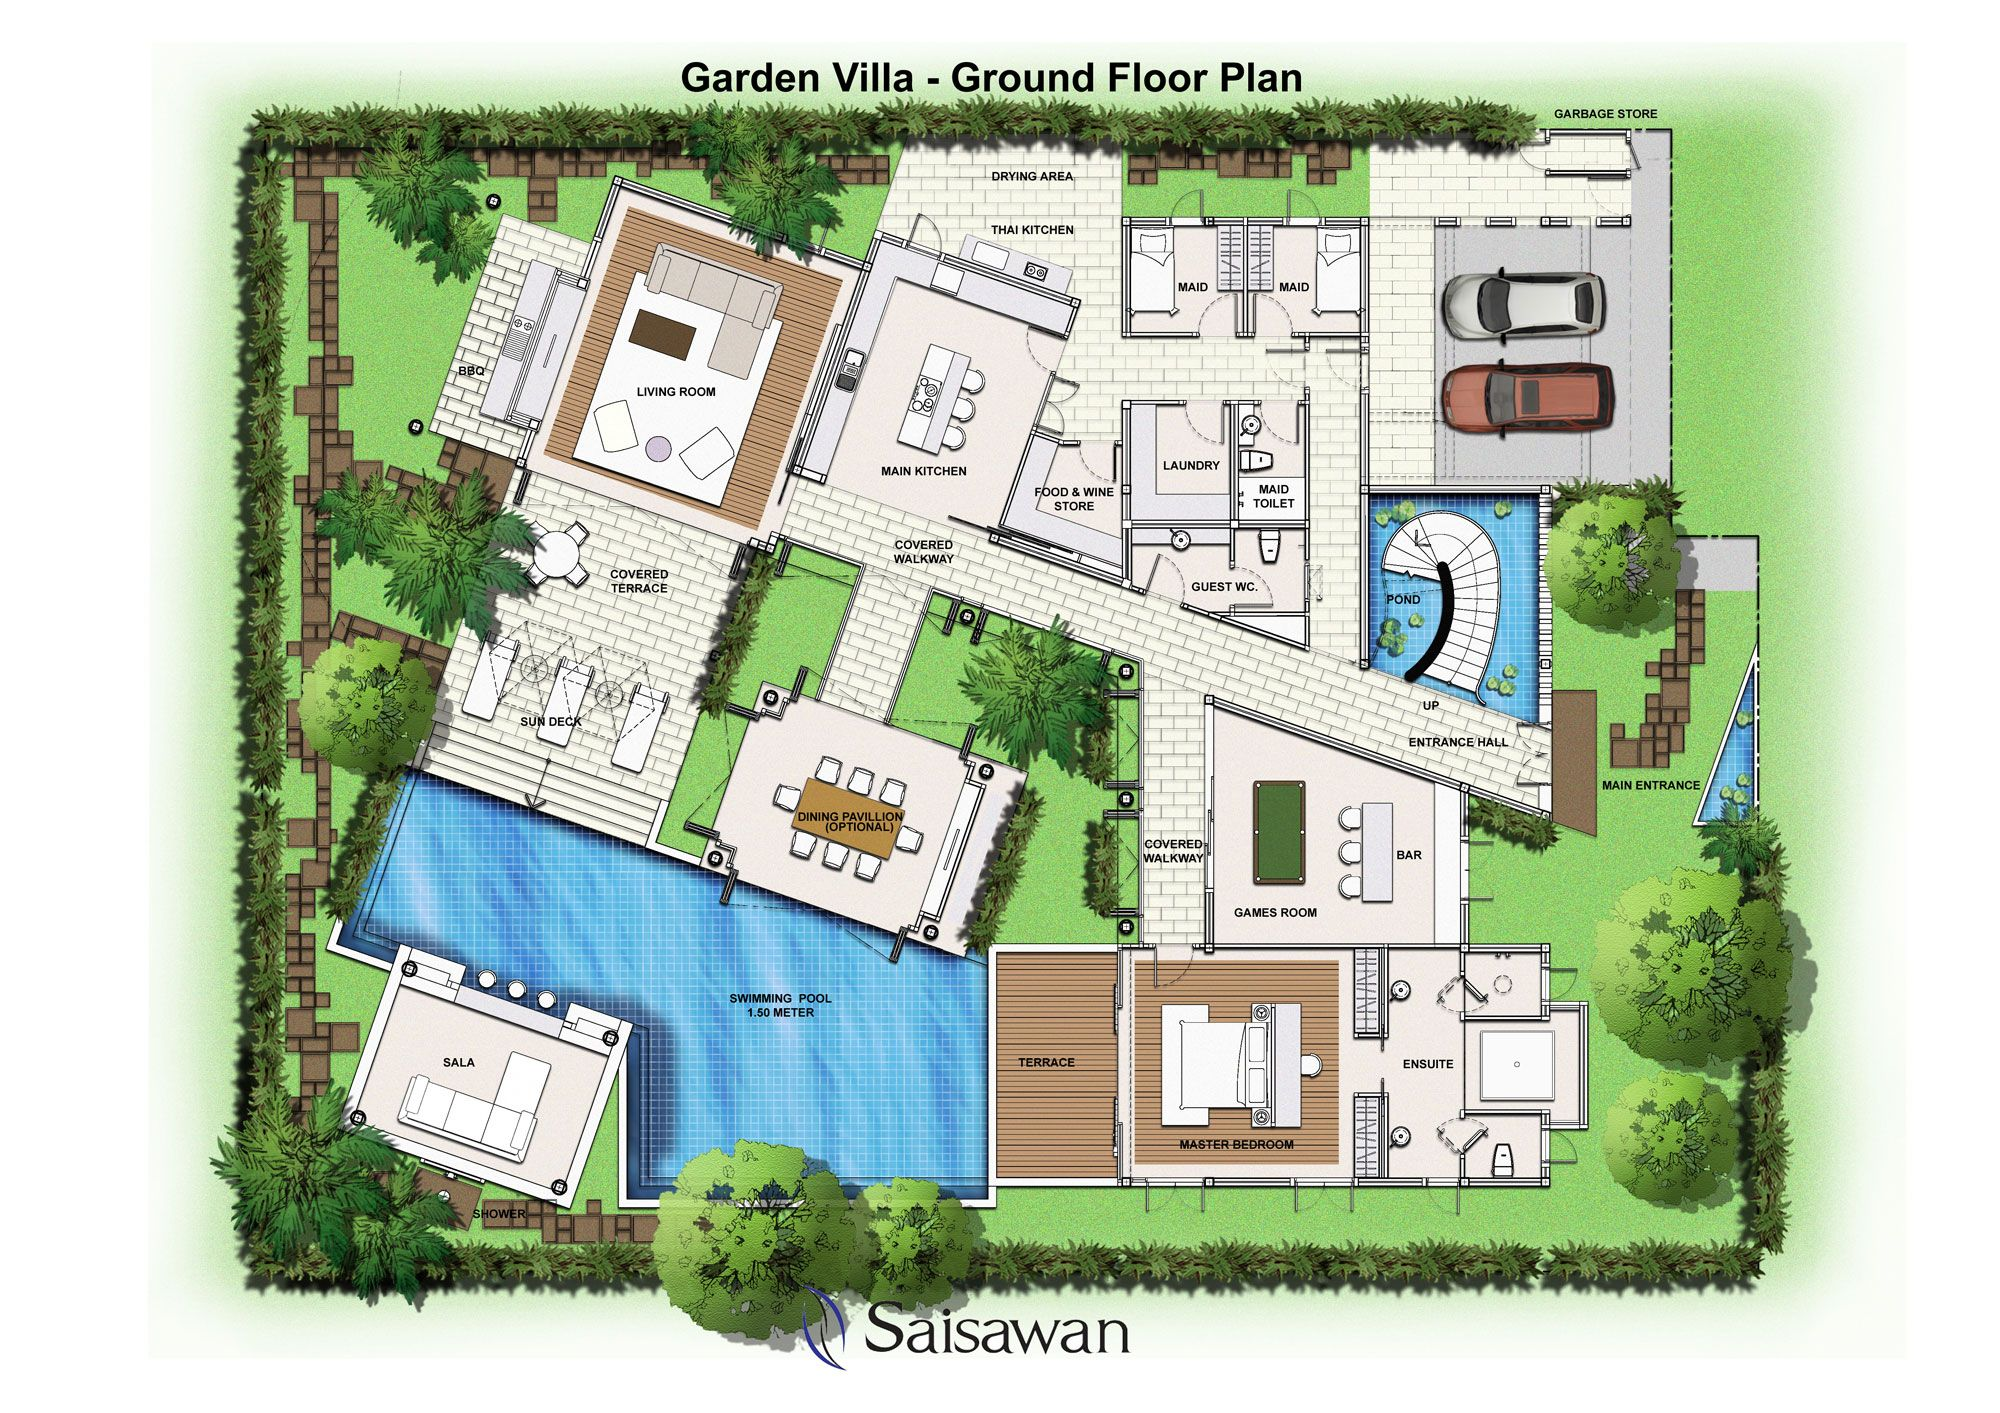 Saisawan garden villas ground floor plan house plans for Landscape design plans